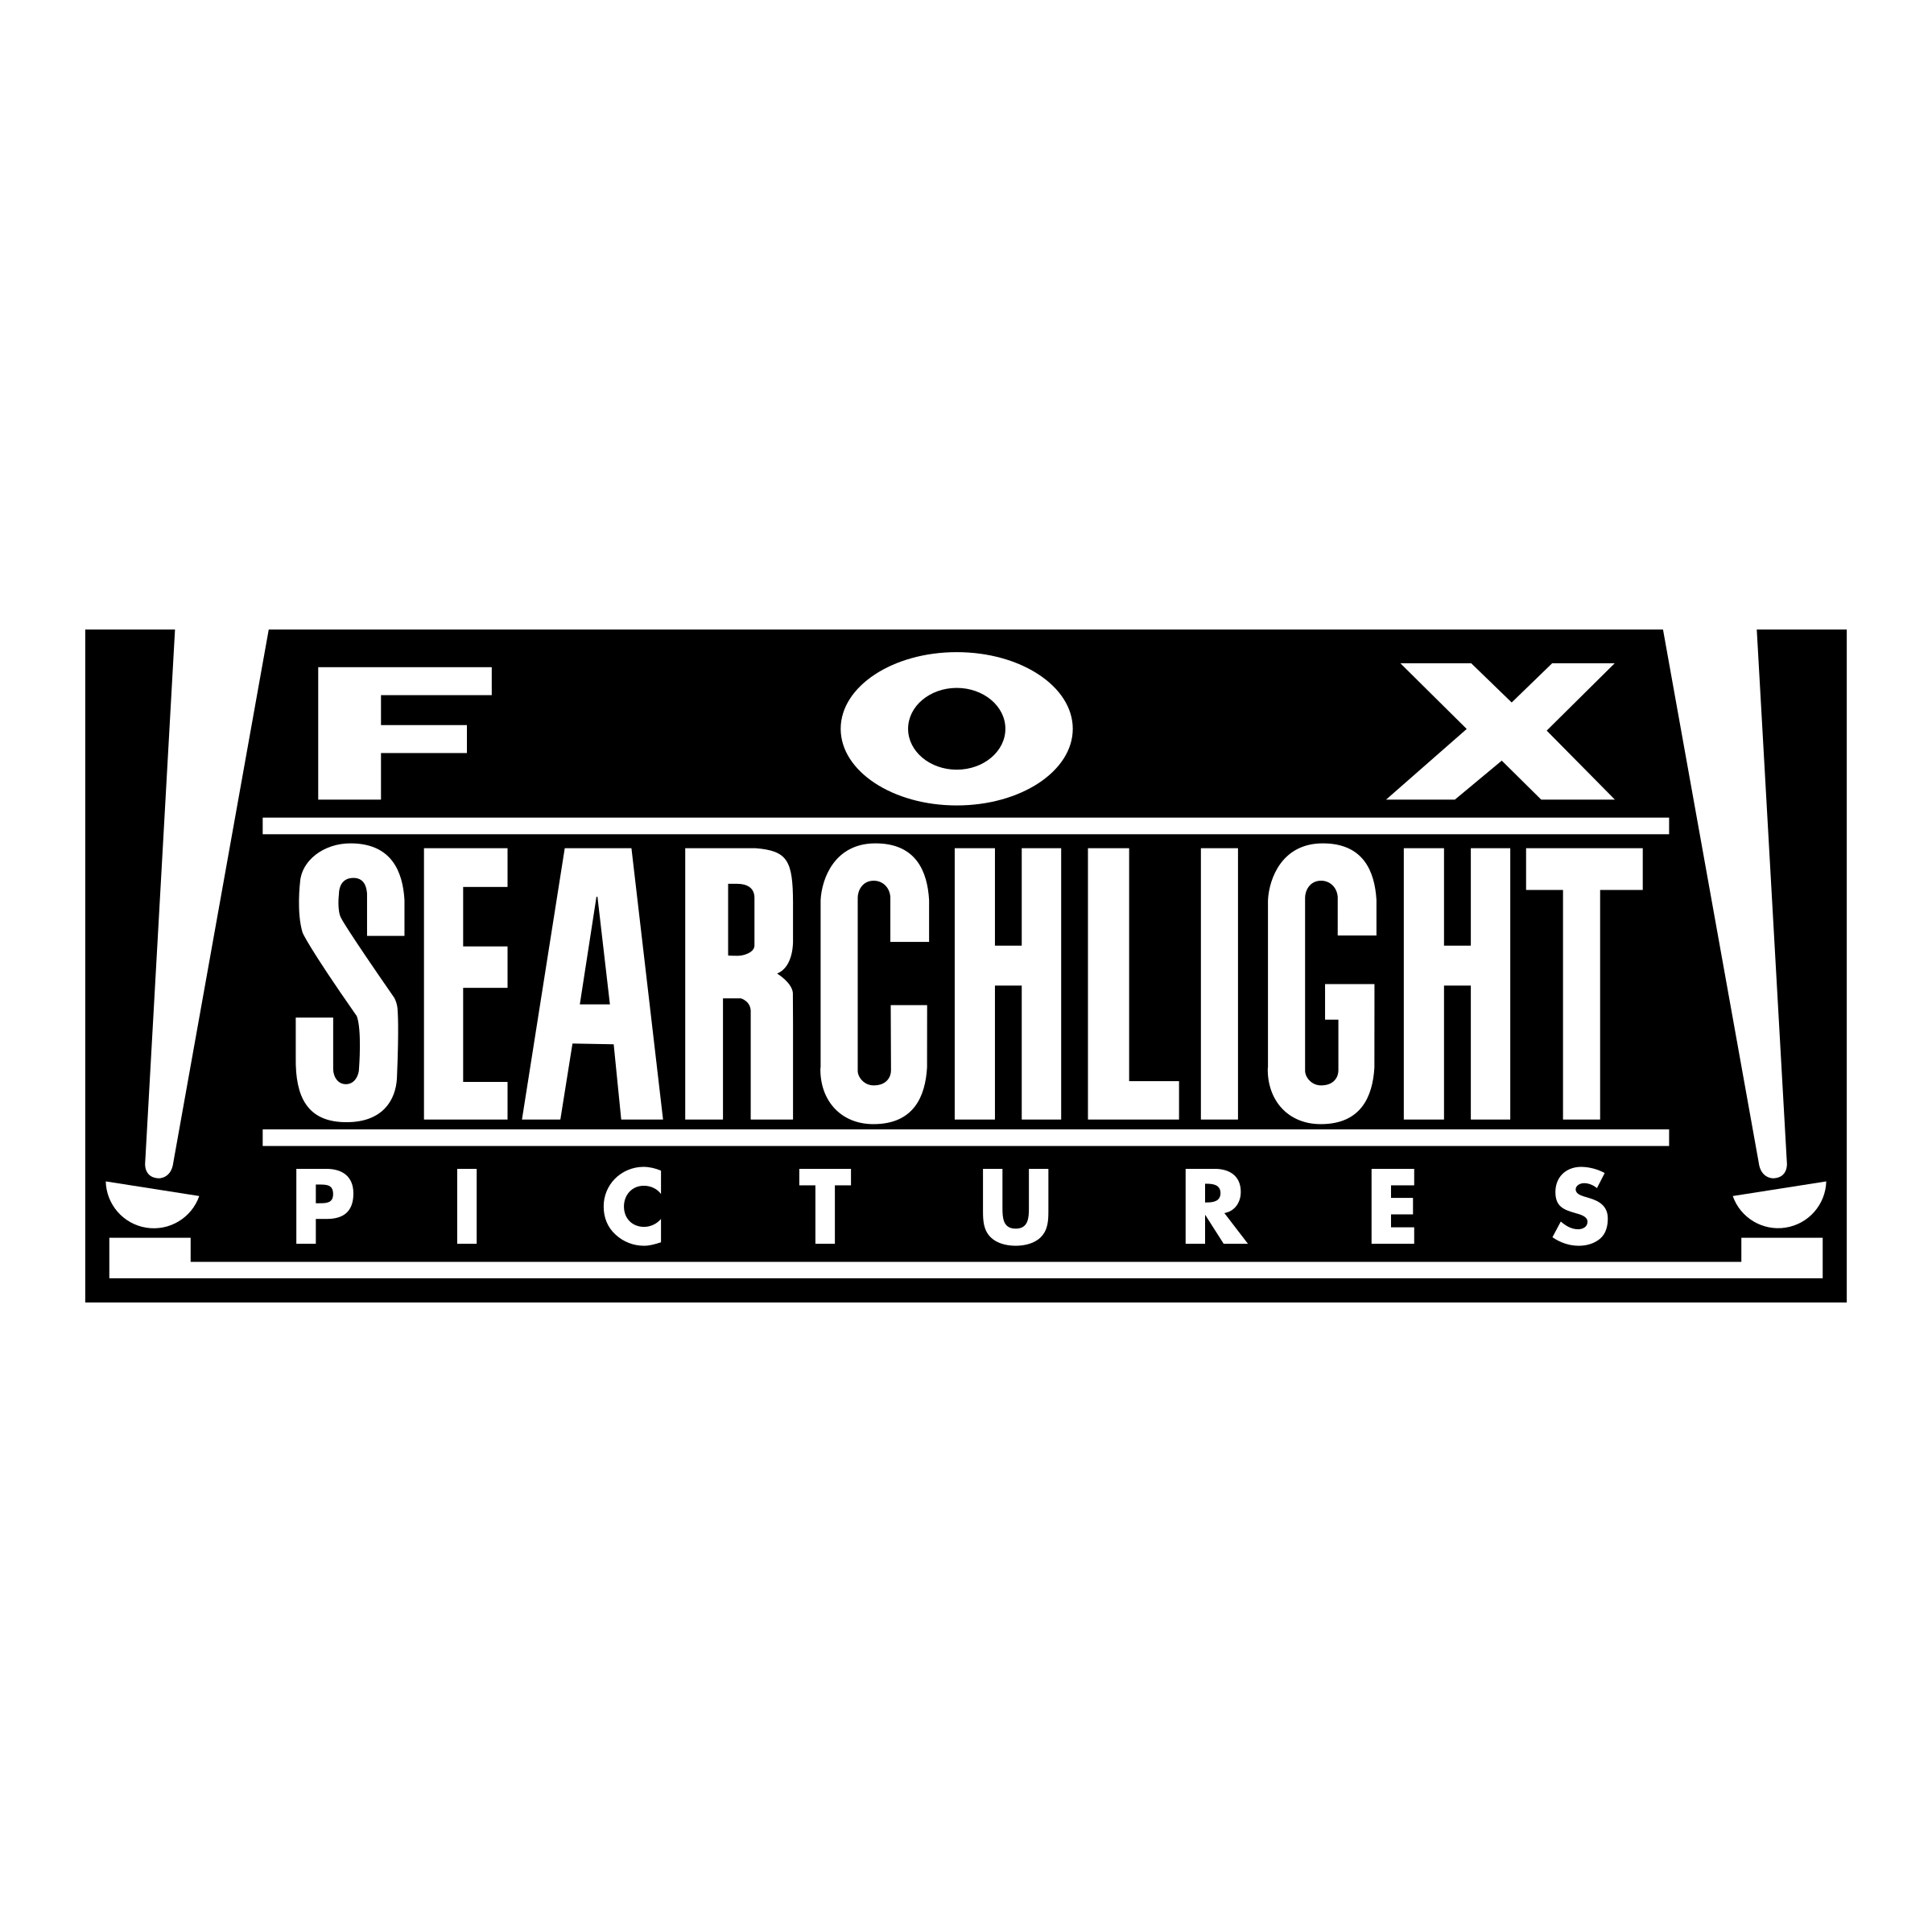 Fox Searchlight Pictures Logo PNG Transparent & SVG Vector